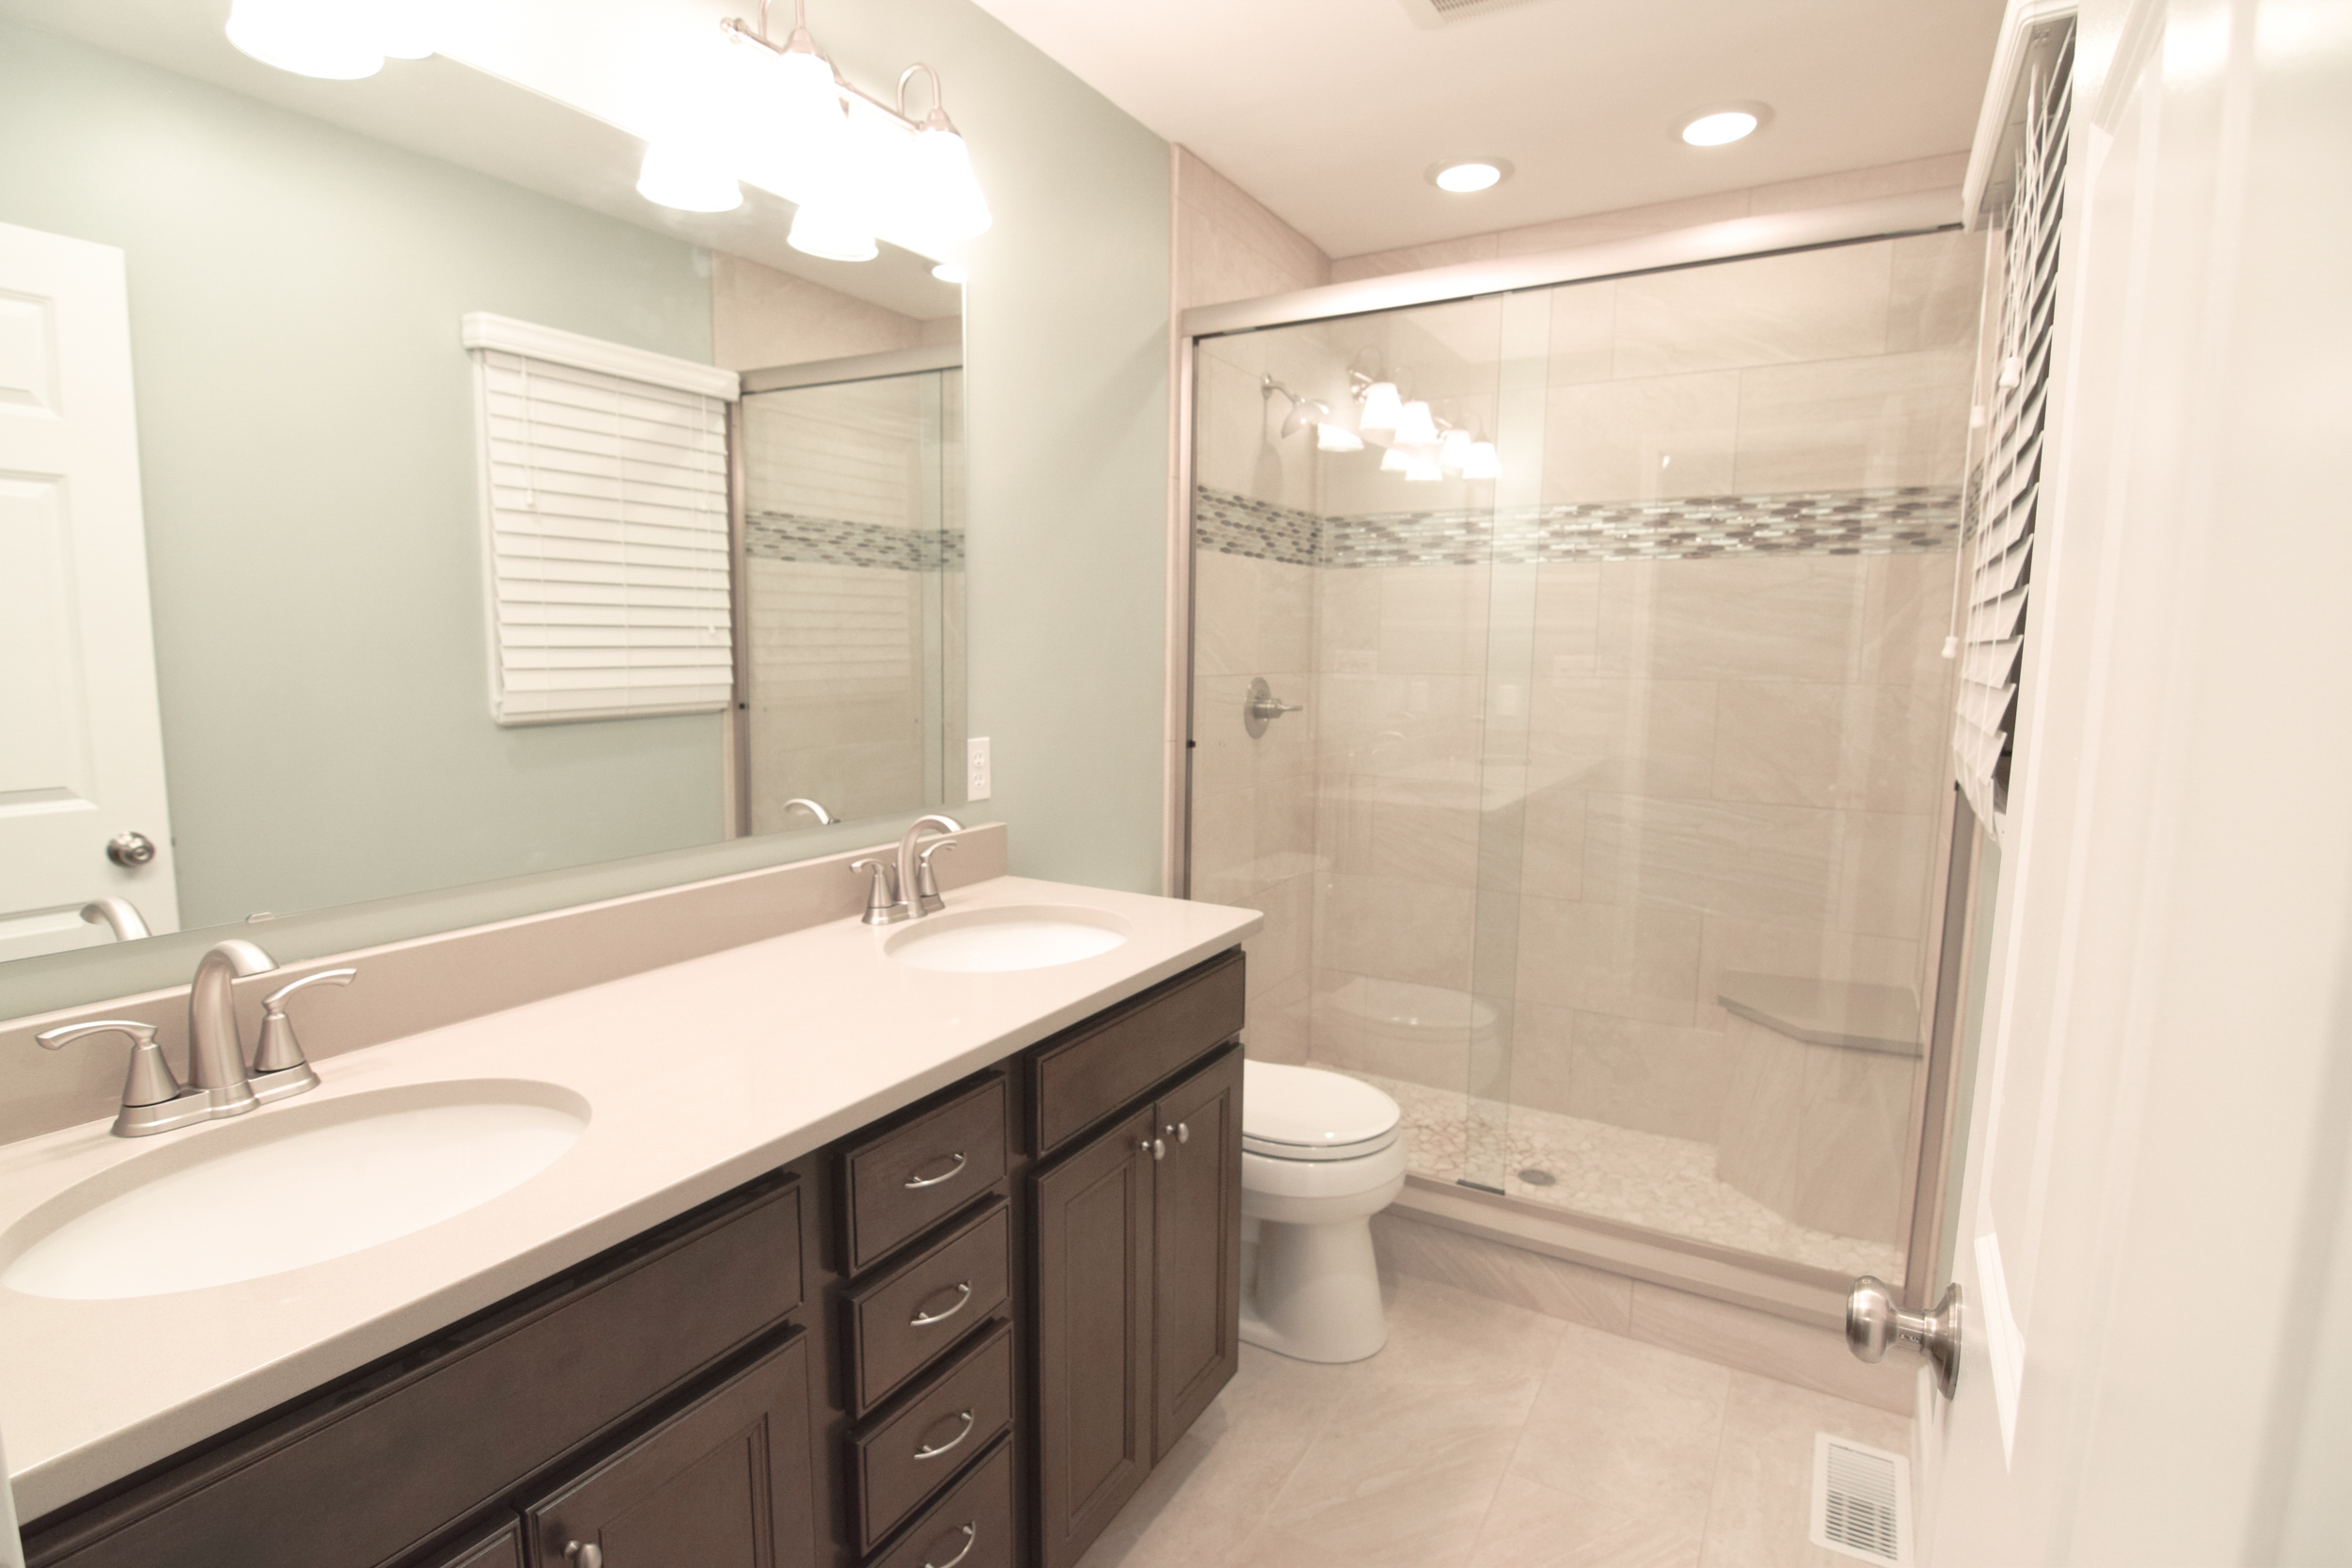 Monarch Homes | The House Next Door | Master Bathroom - After